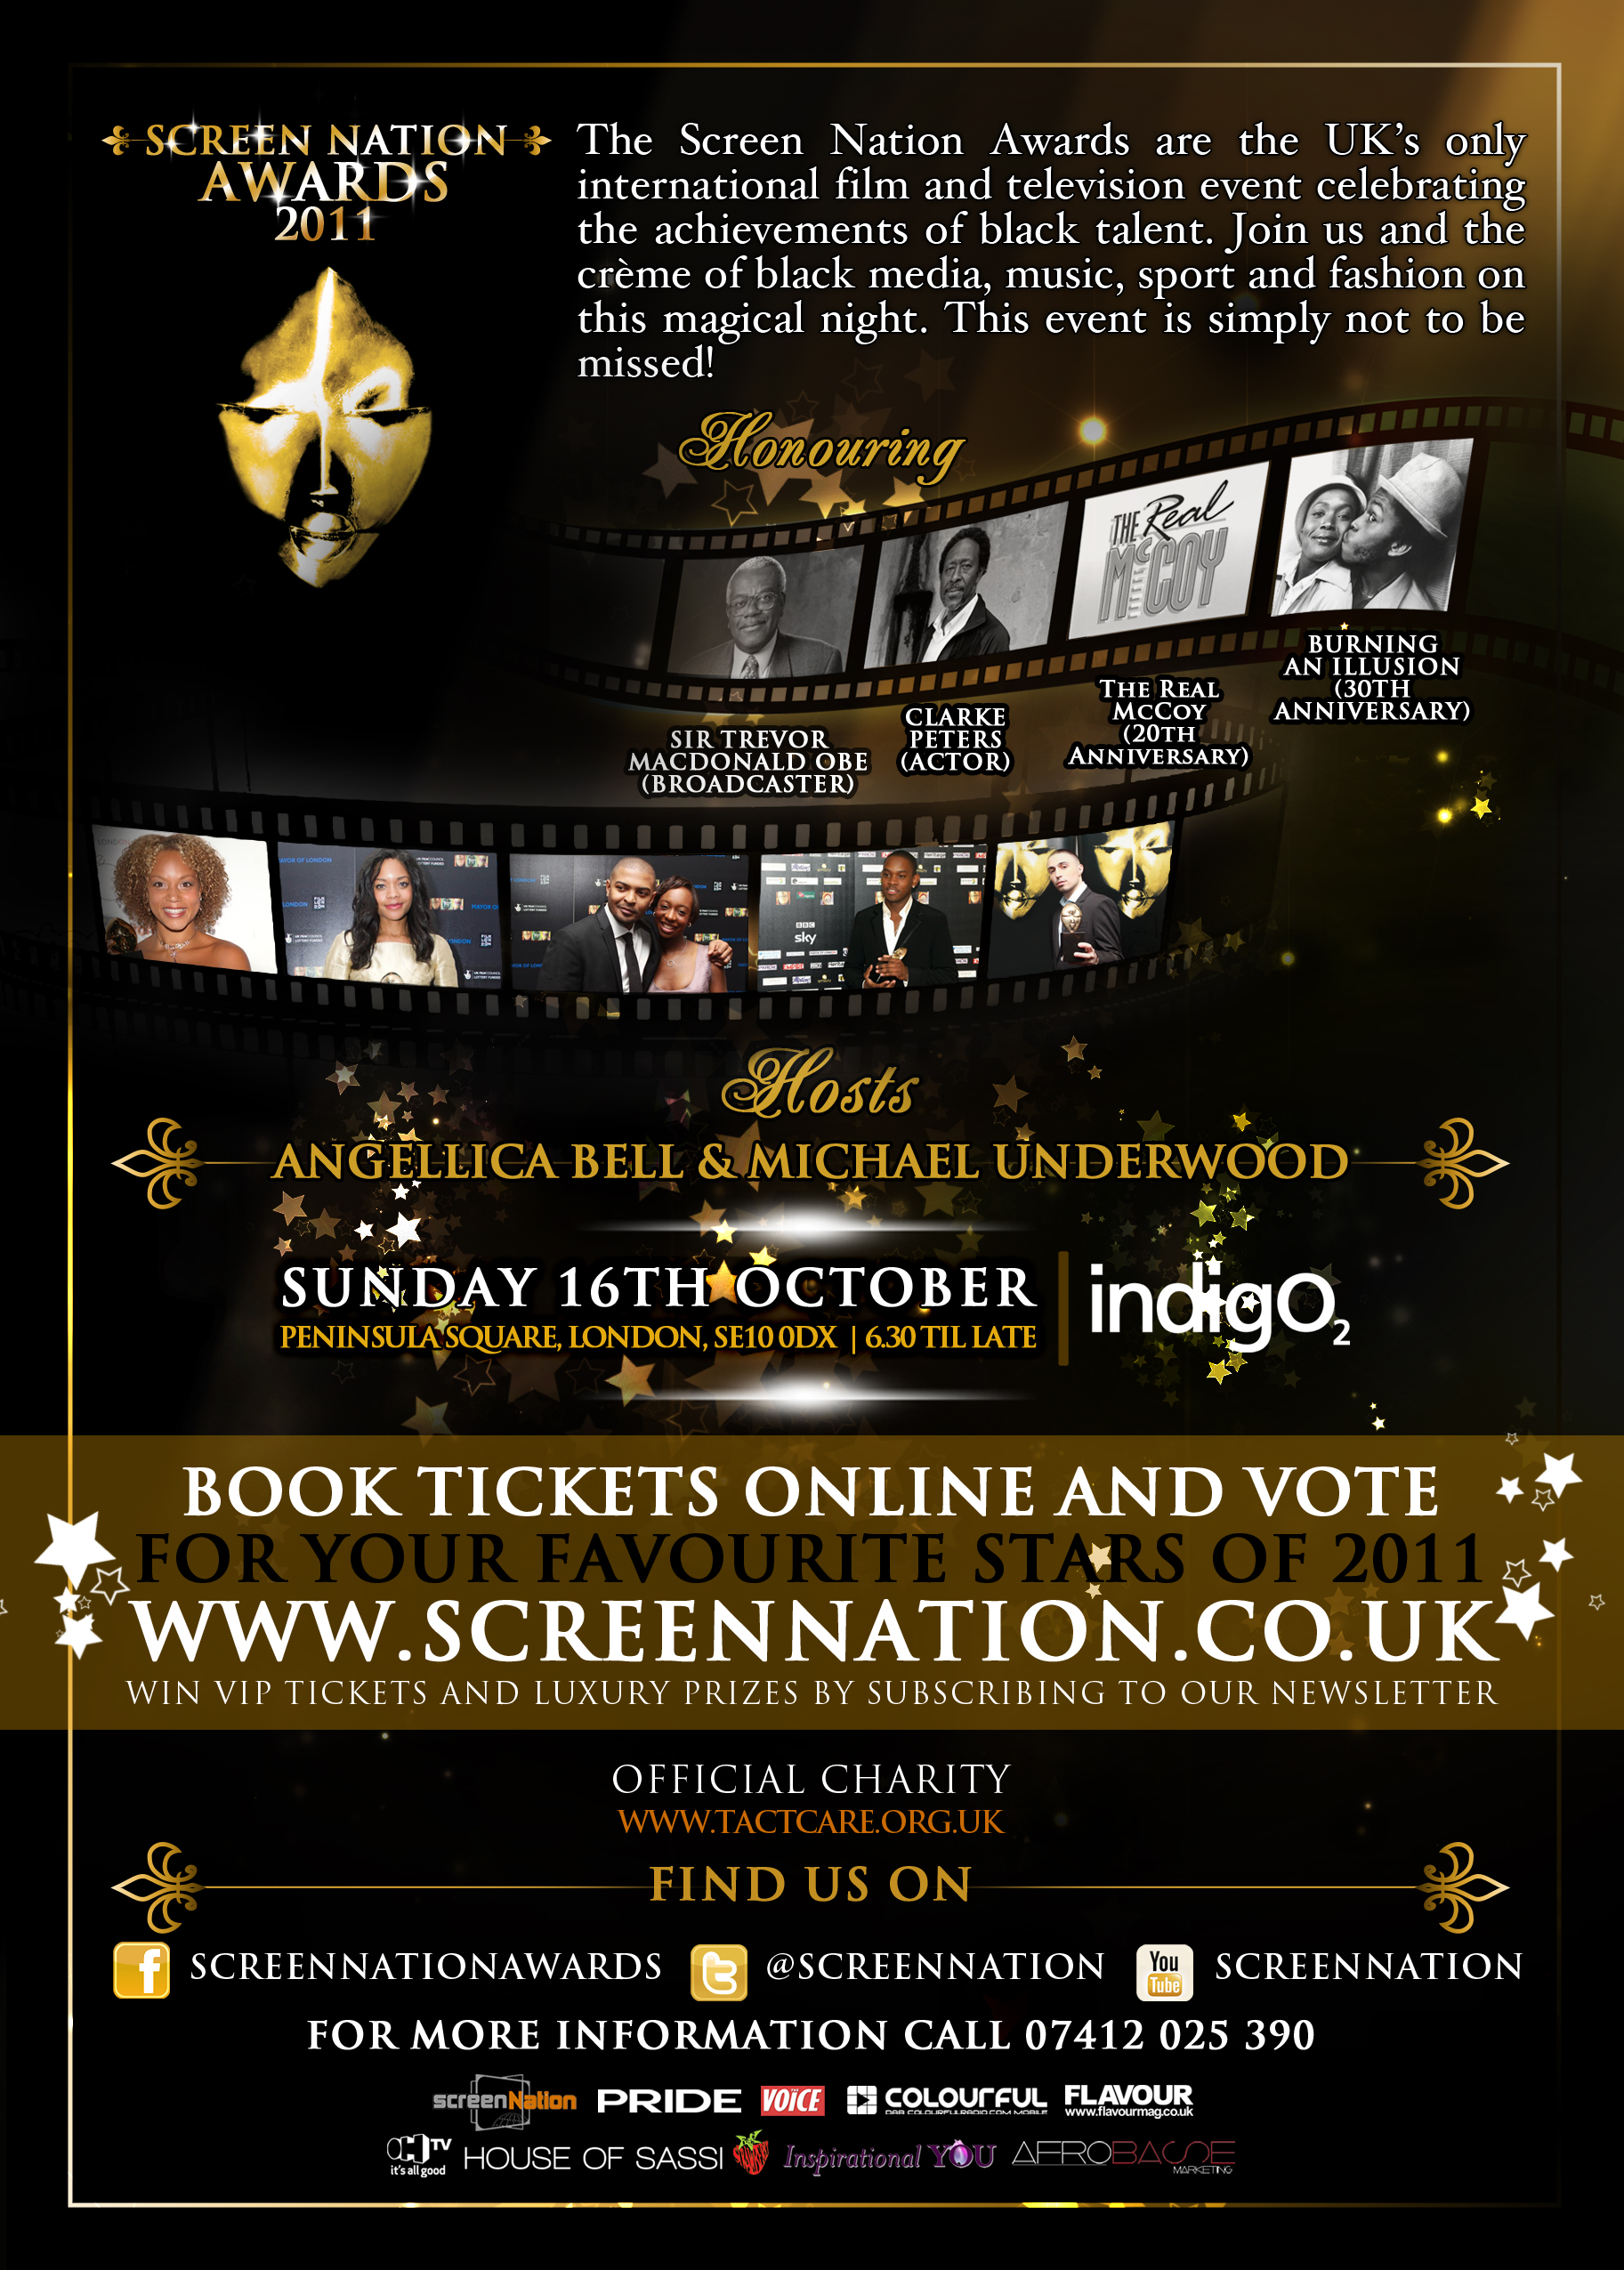 UK NEWS: SCREEN NATION FILM & TELEVISION AWARD NOMINATIONS ANNOUNCED ...